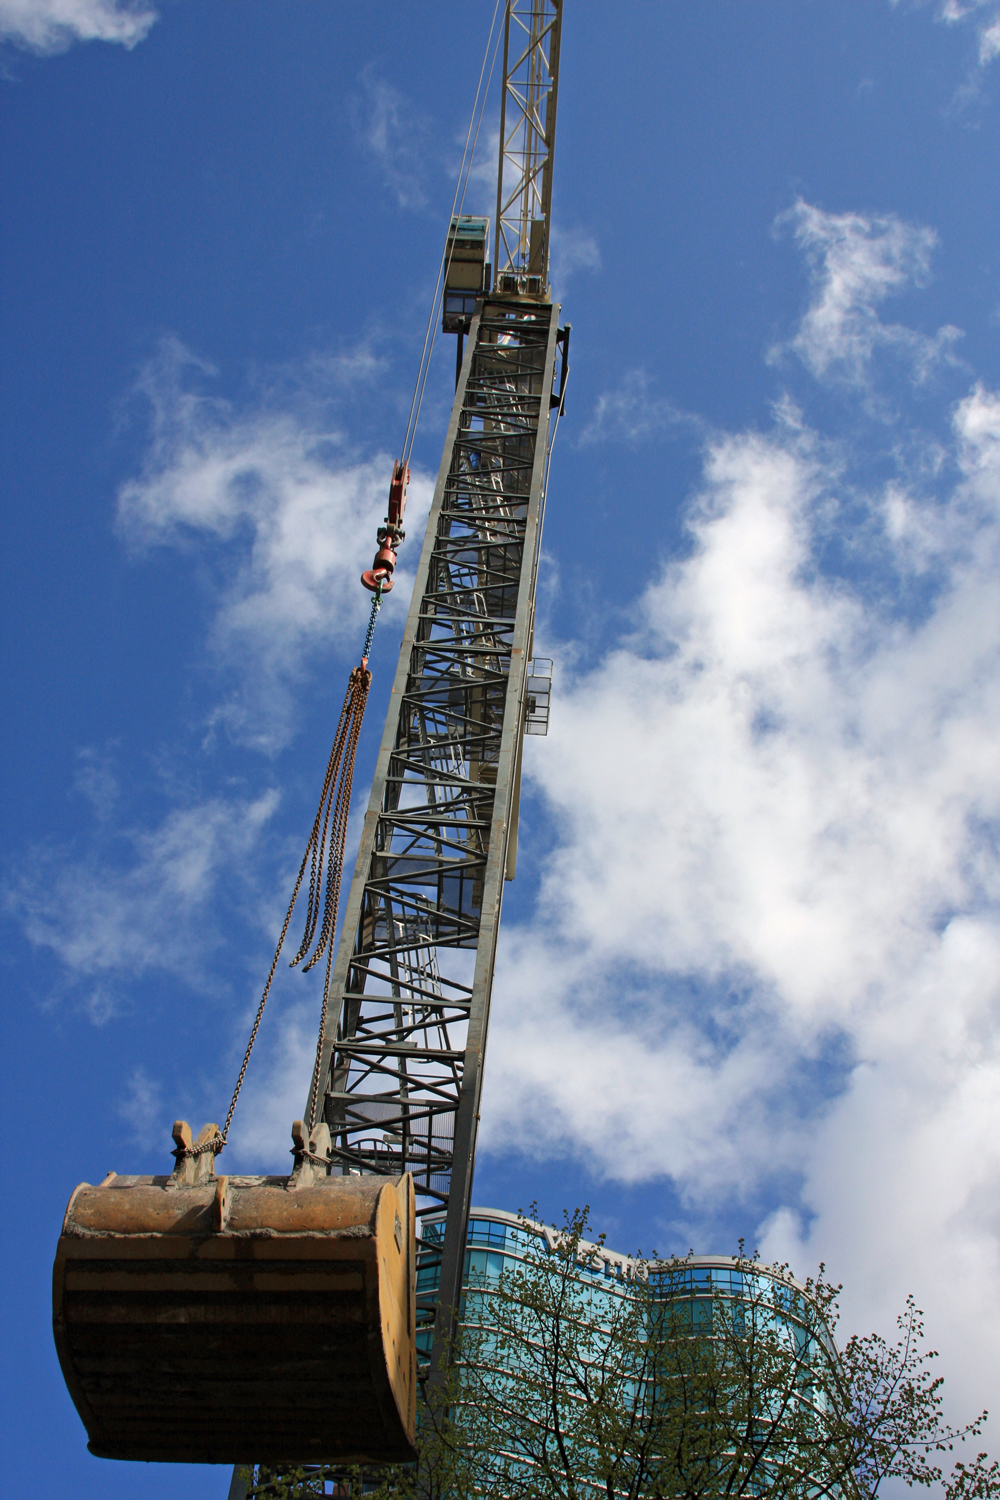 Tower Crane Nashville : Coolest tower crane photo submissions all things cranes